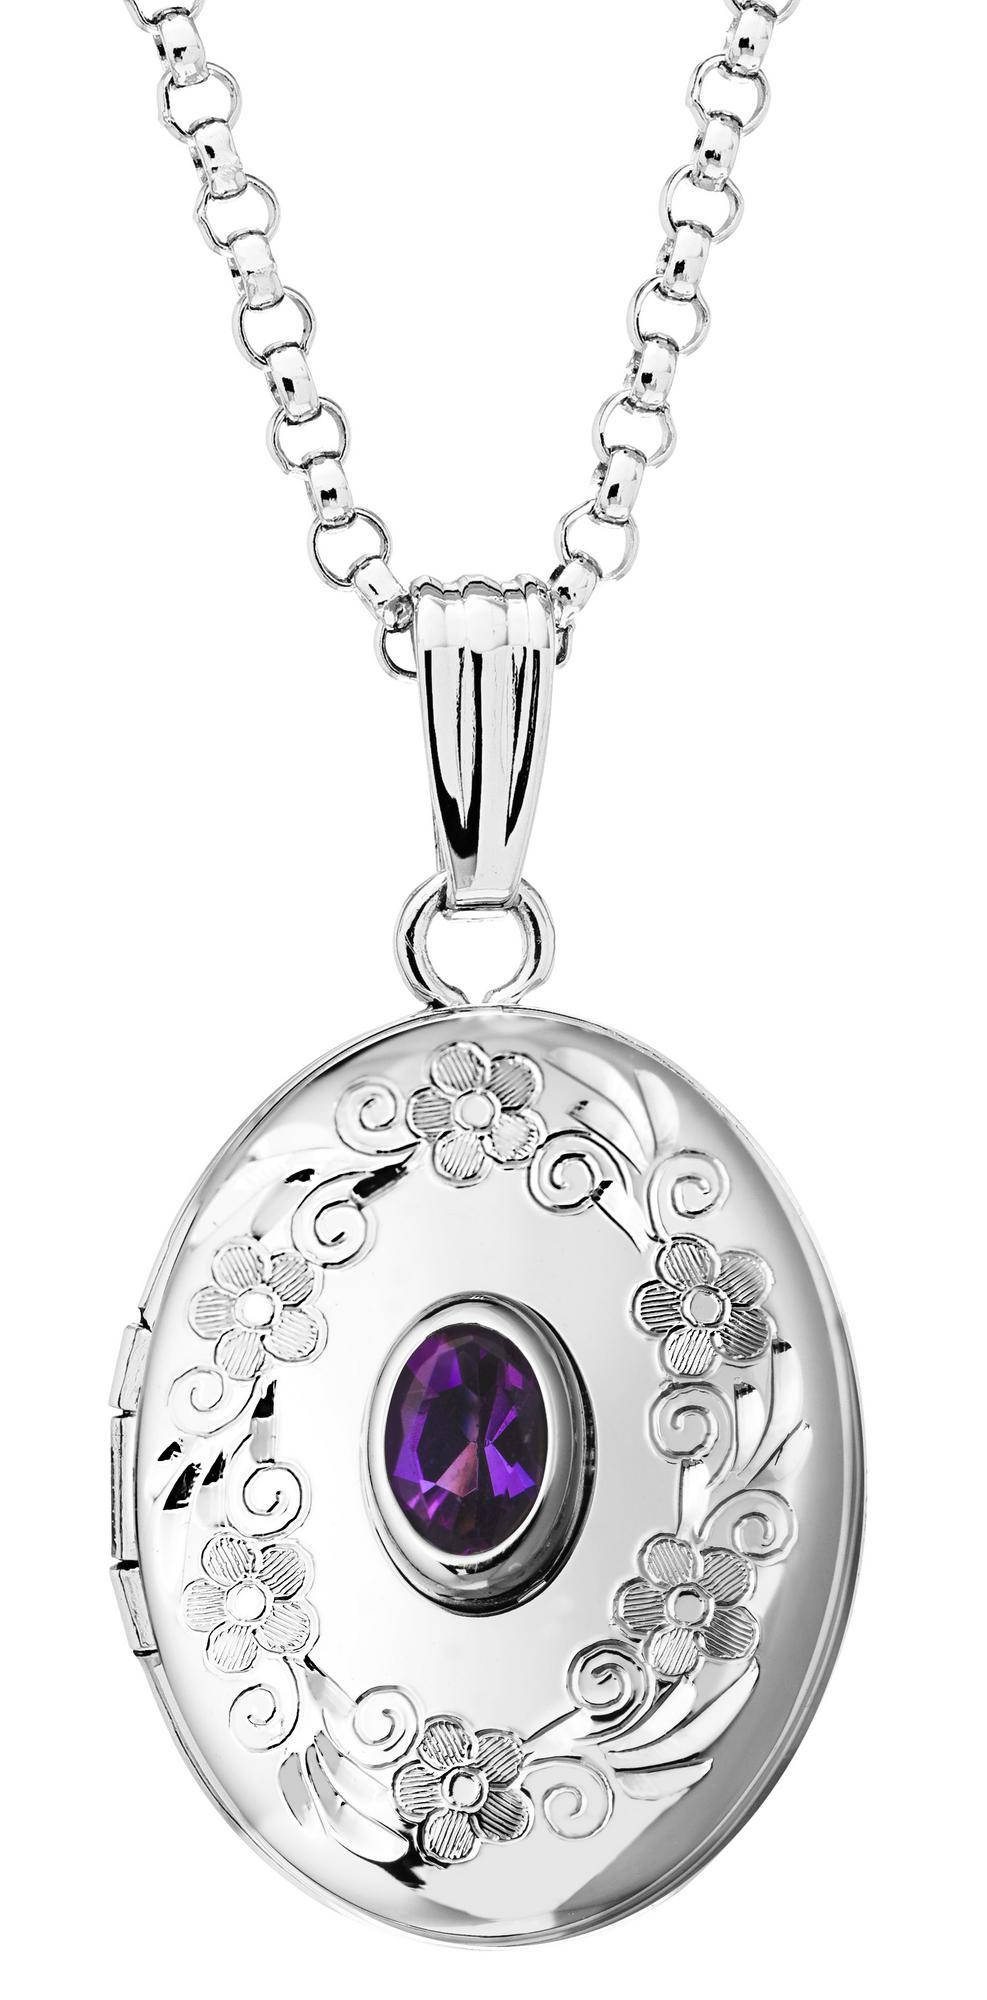 Sterling Silver Genuine Amethyst Oval Locket Necklace February  Birthstone Personalized Engraved Monogram